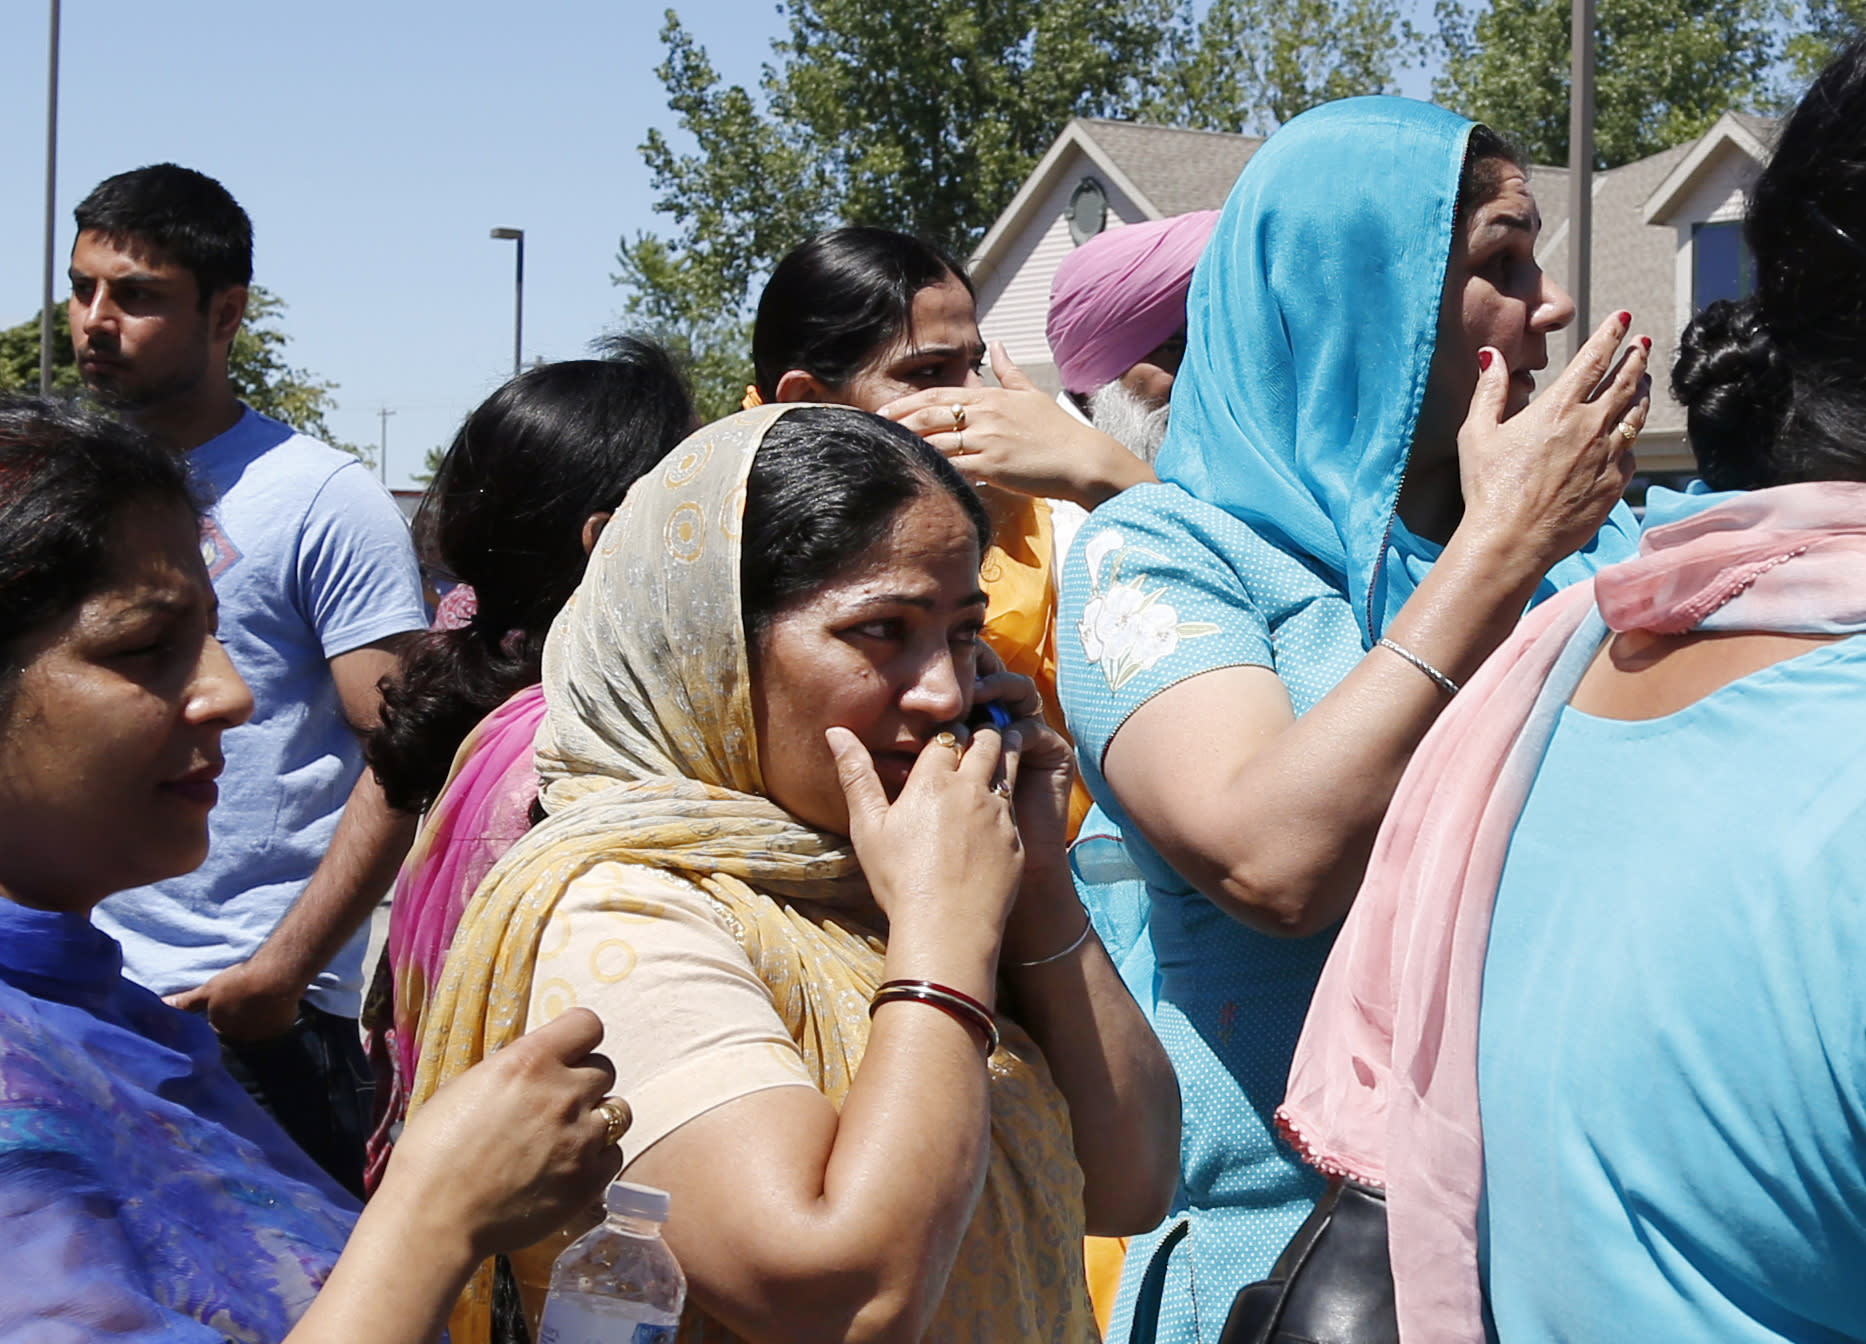 A woman uses a phone as people react outside the Sikh Temple of Wisconsin in Oak Creek, Wi, where a shooting took place Sunday, Aug 5, 2012. (AP Photo/Jeffrey Phelps)